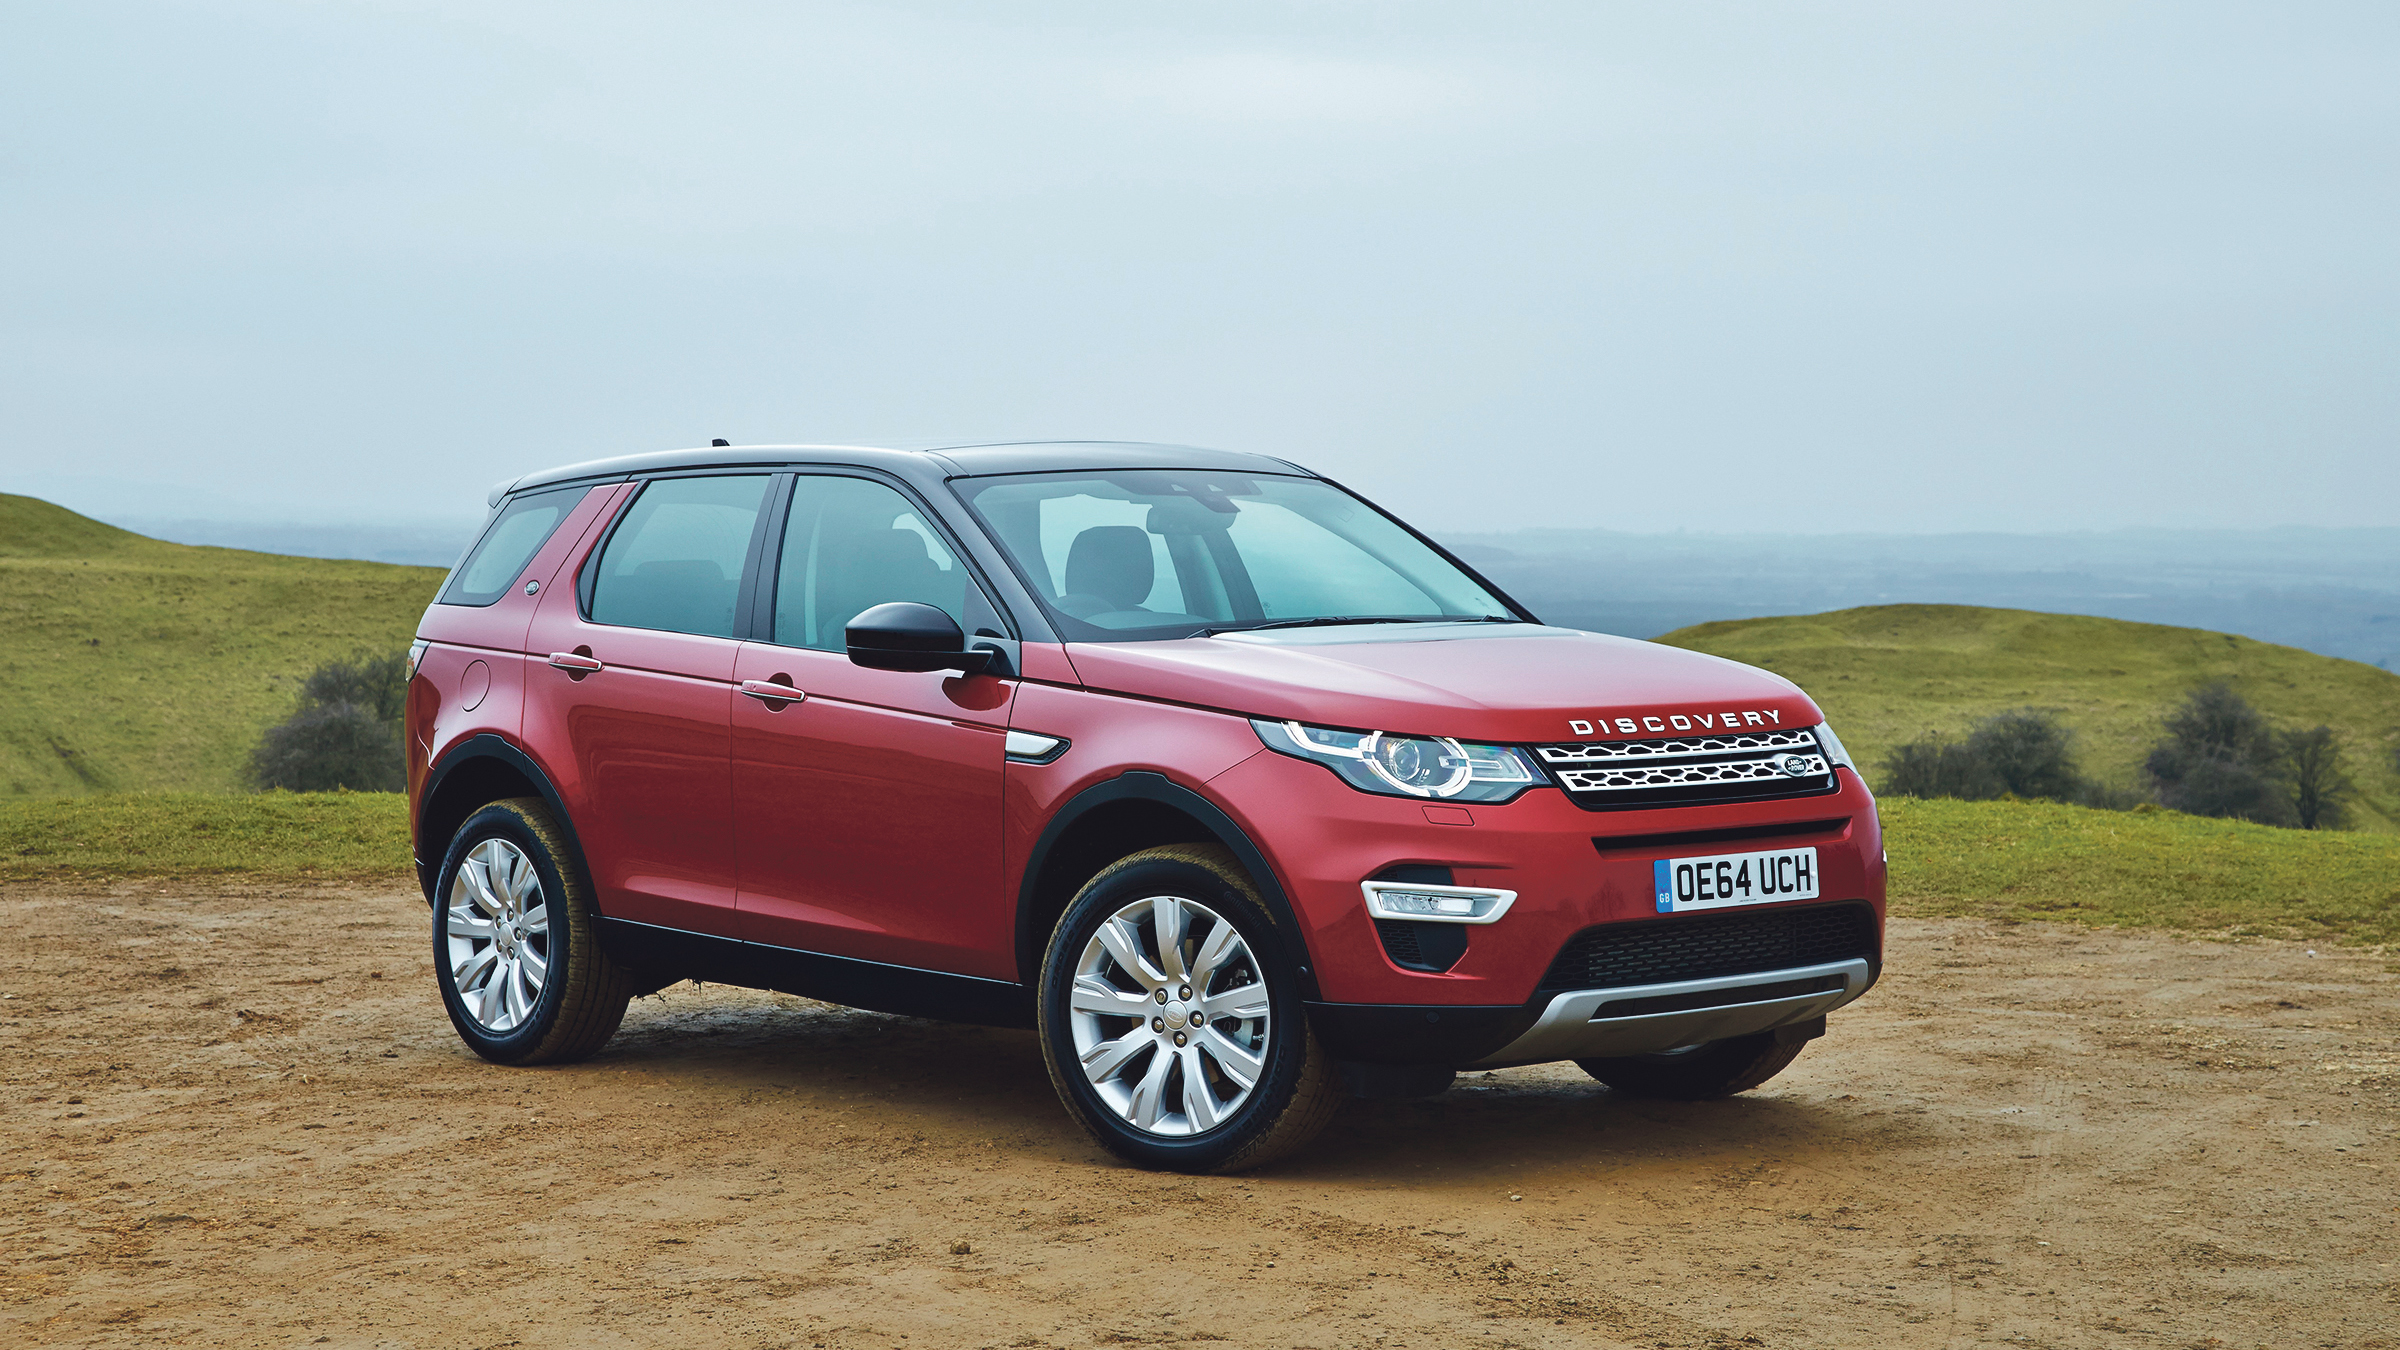 Practicality and versatility key with Discovery Sport